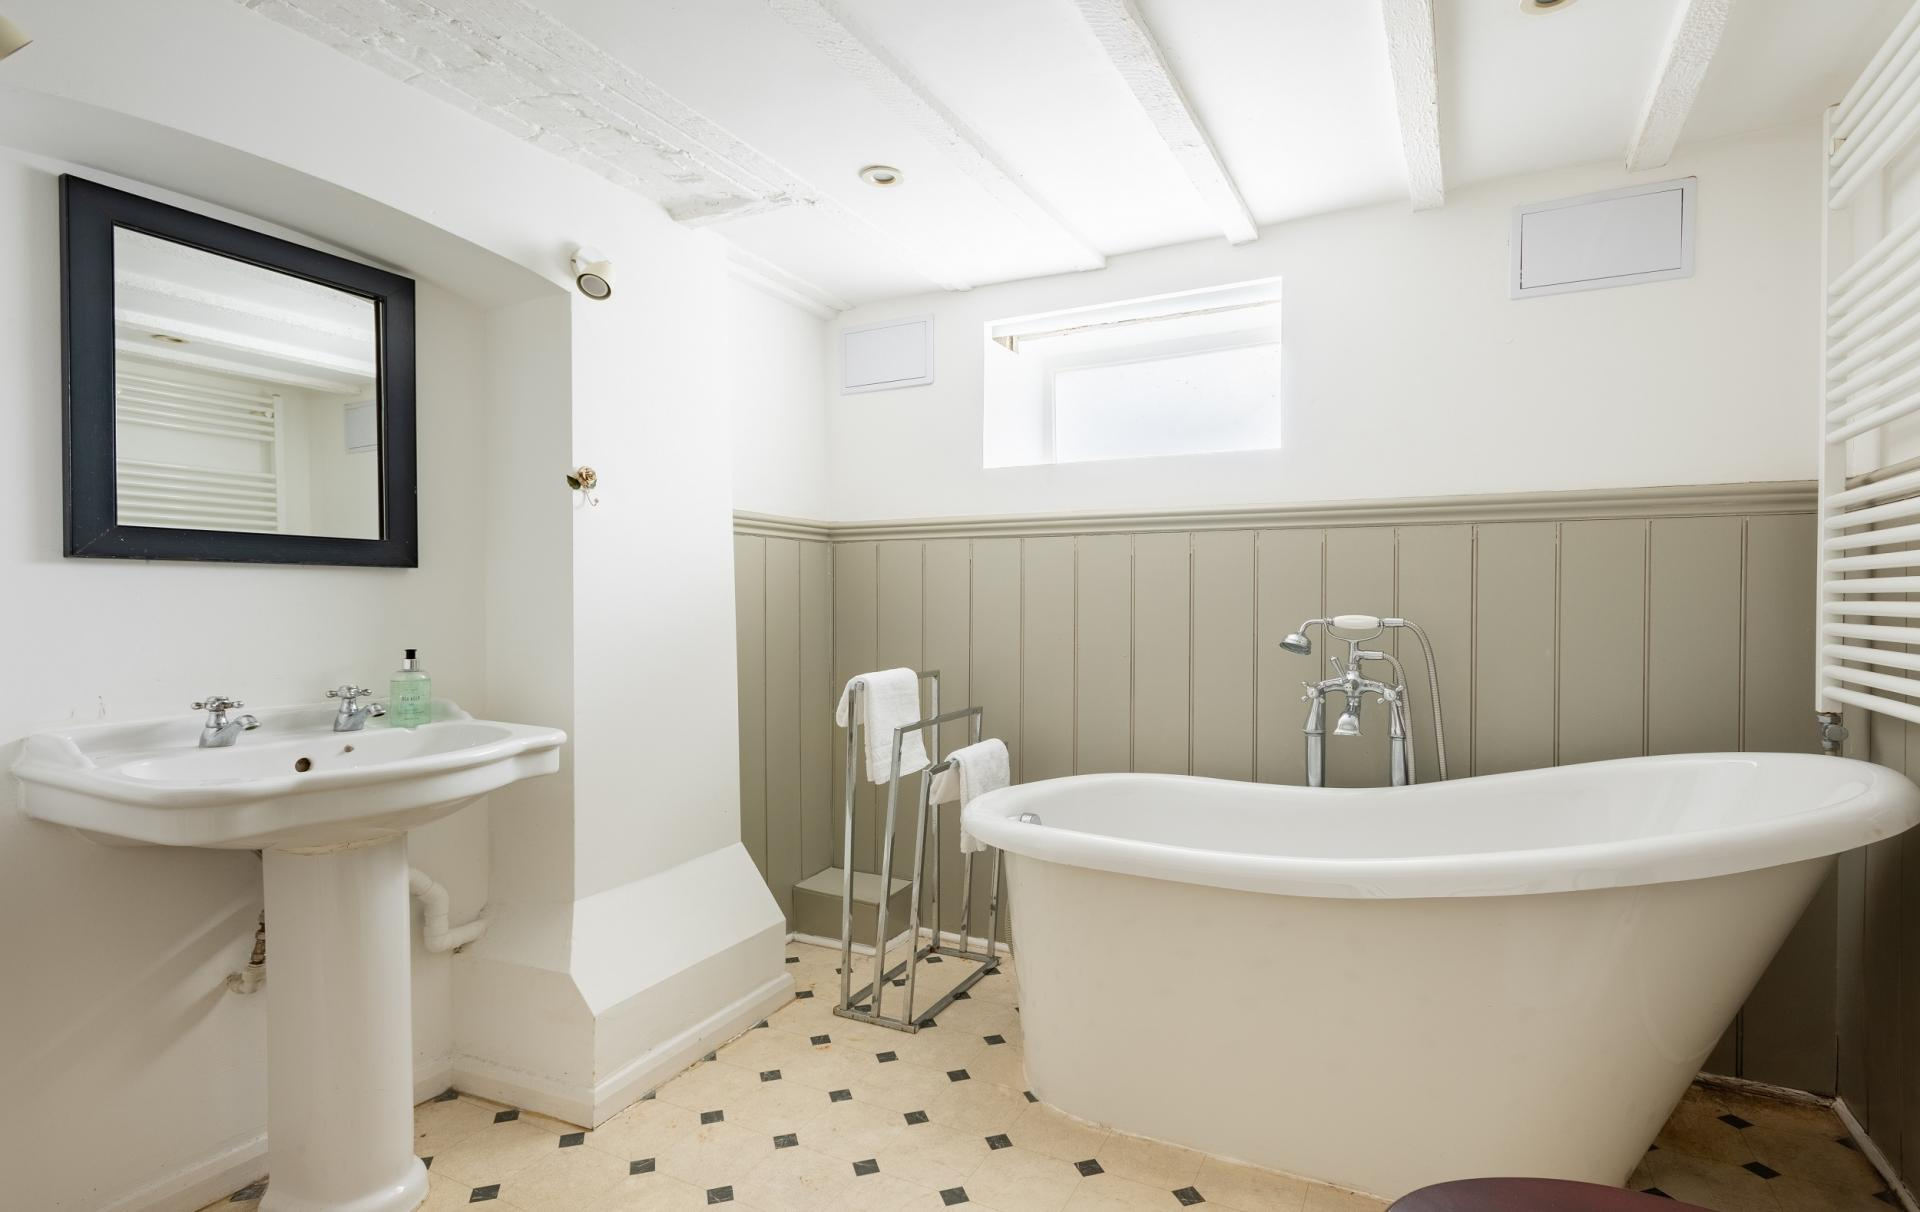 Bathroom at The Writer's Townhouse, Centre, Oxford - Citybase Apartments